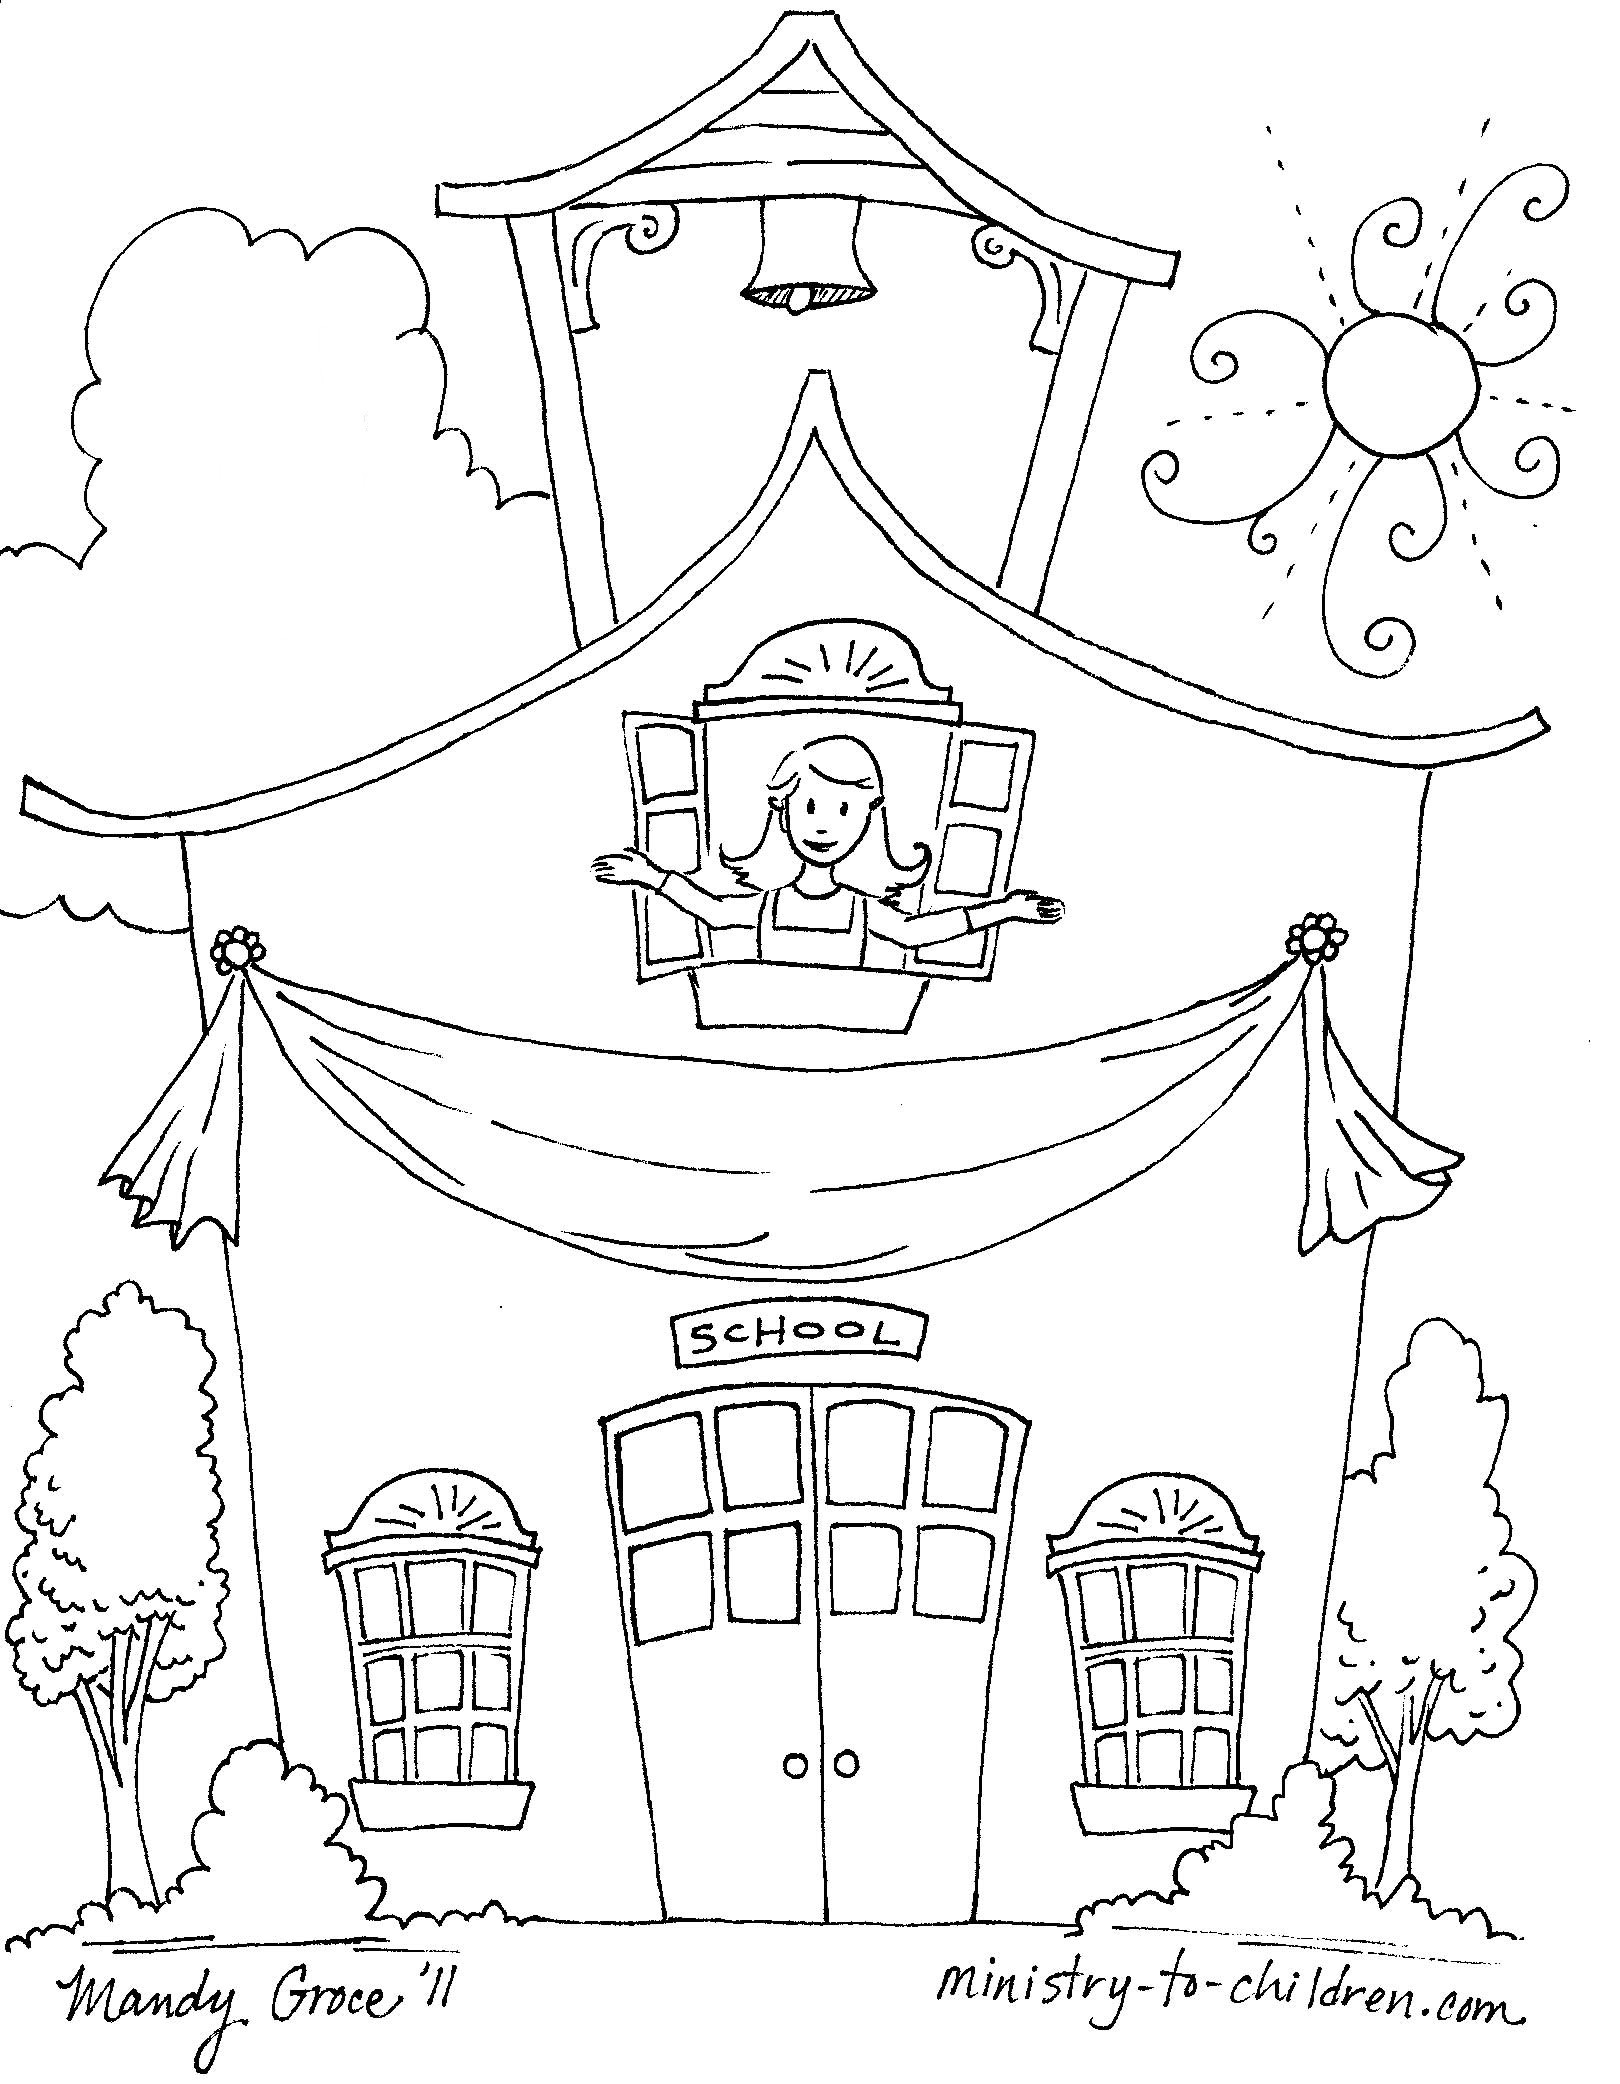 Last Day School Coloring Pages School Coloring Page Printable Gallery Of School House Coloring Pages to Print